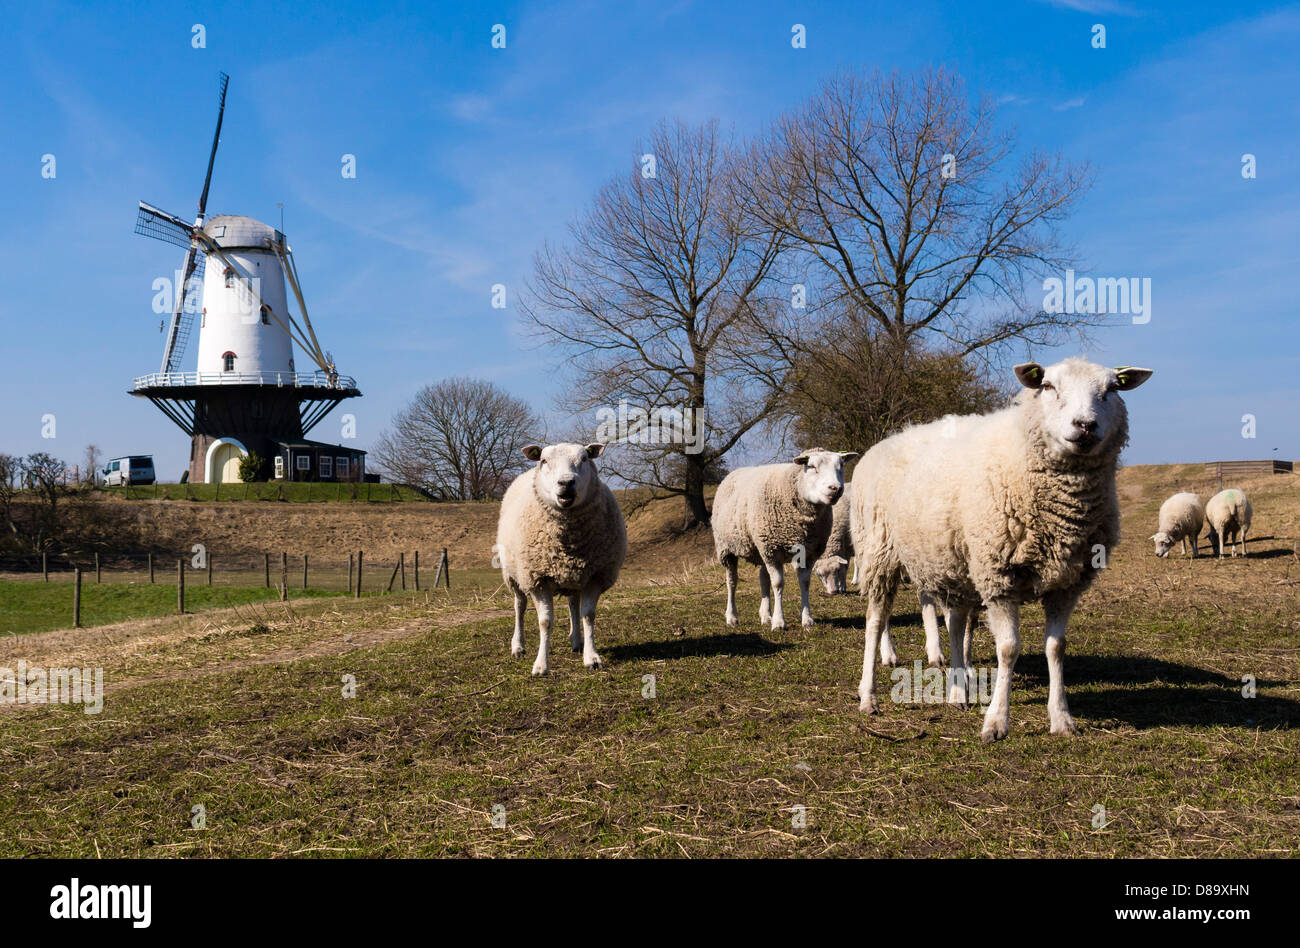 Sheep graze on a meadow in front of the Veere windmill. - Stock Image